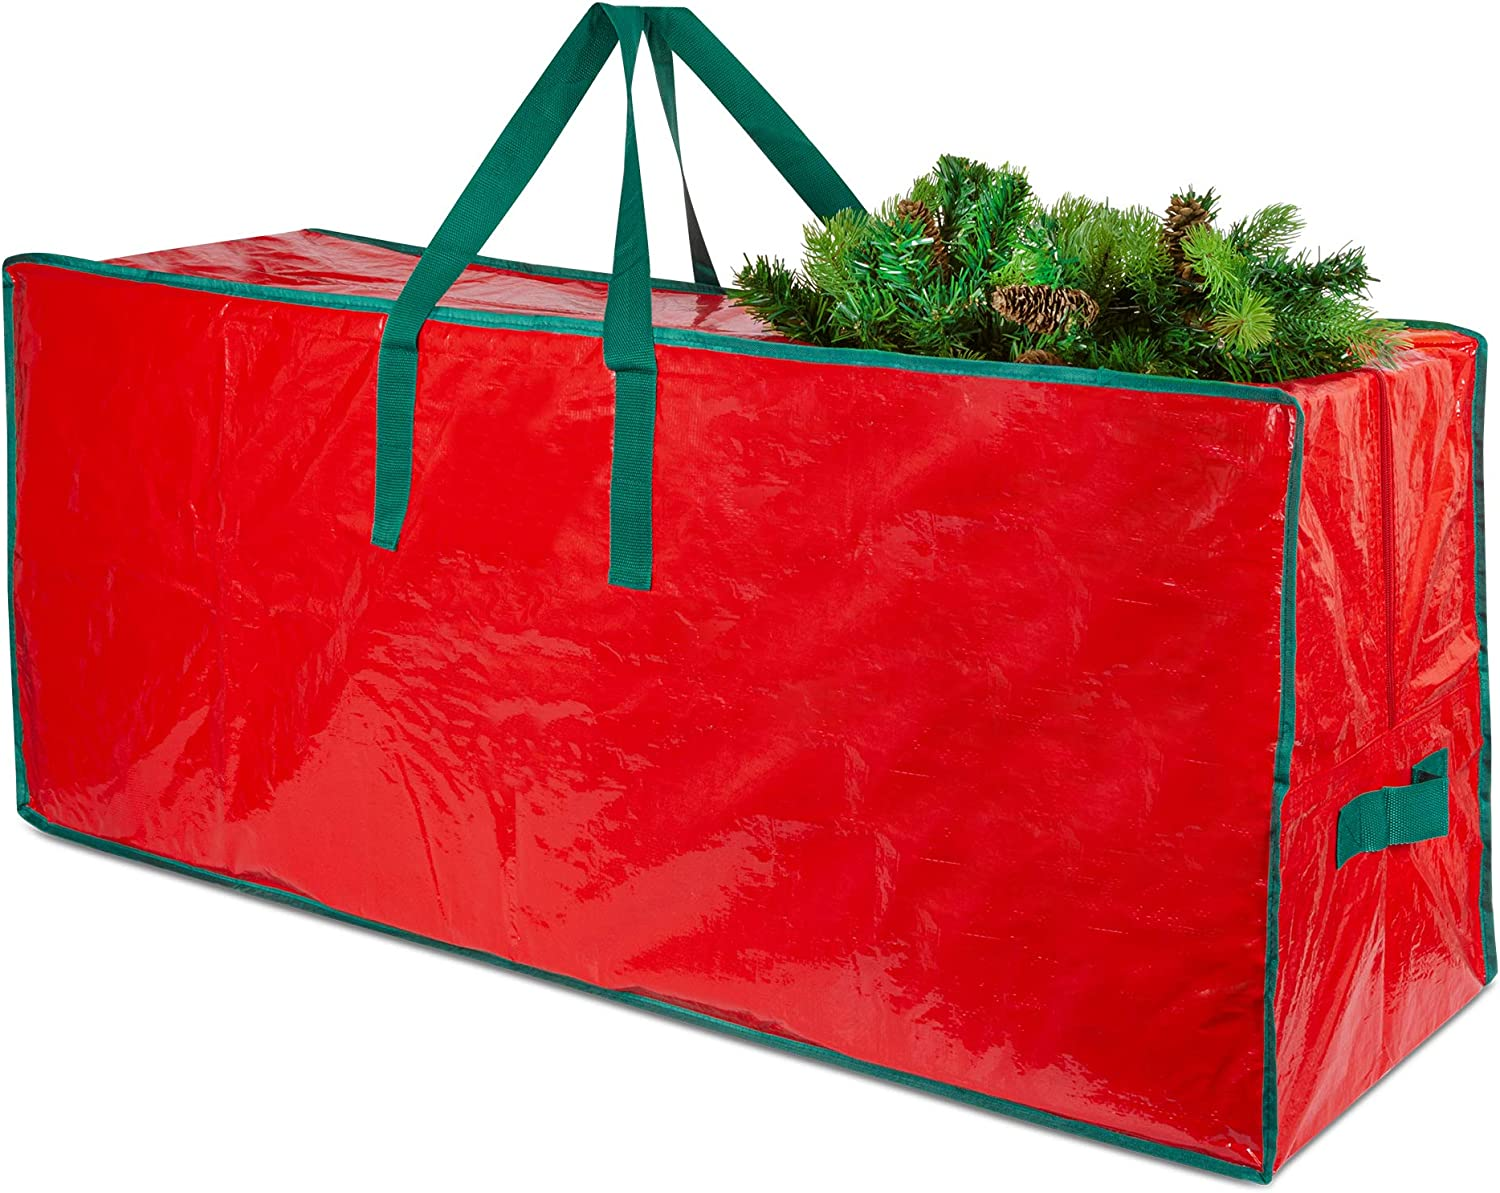 DSL Christmas Tree Storage Bag with Handles – Easy to Store Christmas Tree Bag, Fits Up to 6ft Tall Trees - Wipe Clean Surface Large Bag for Xmas Tree and Decorations – Strong Durable with Full Zipper